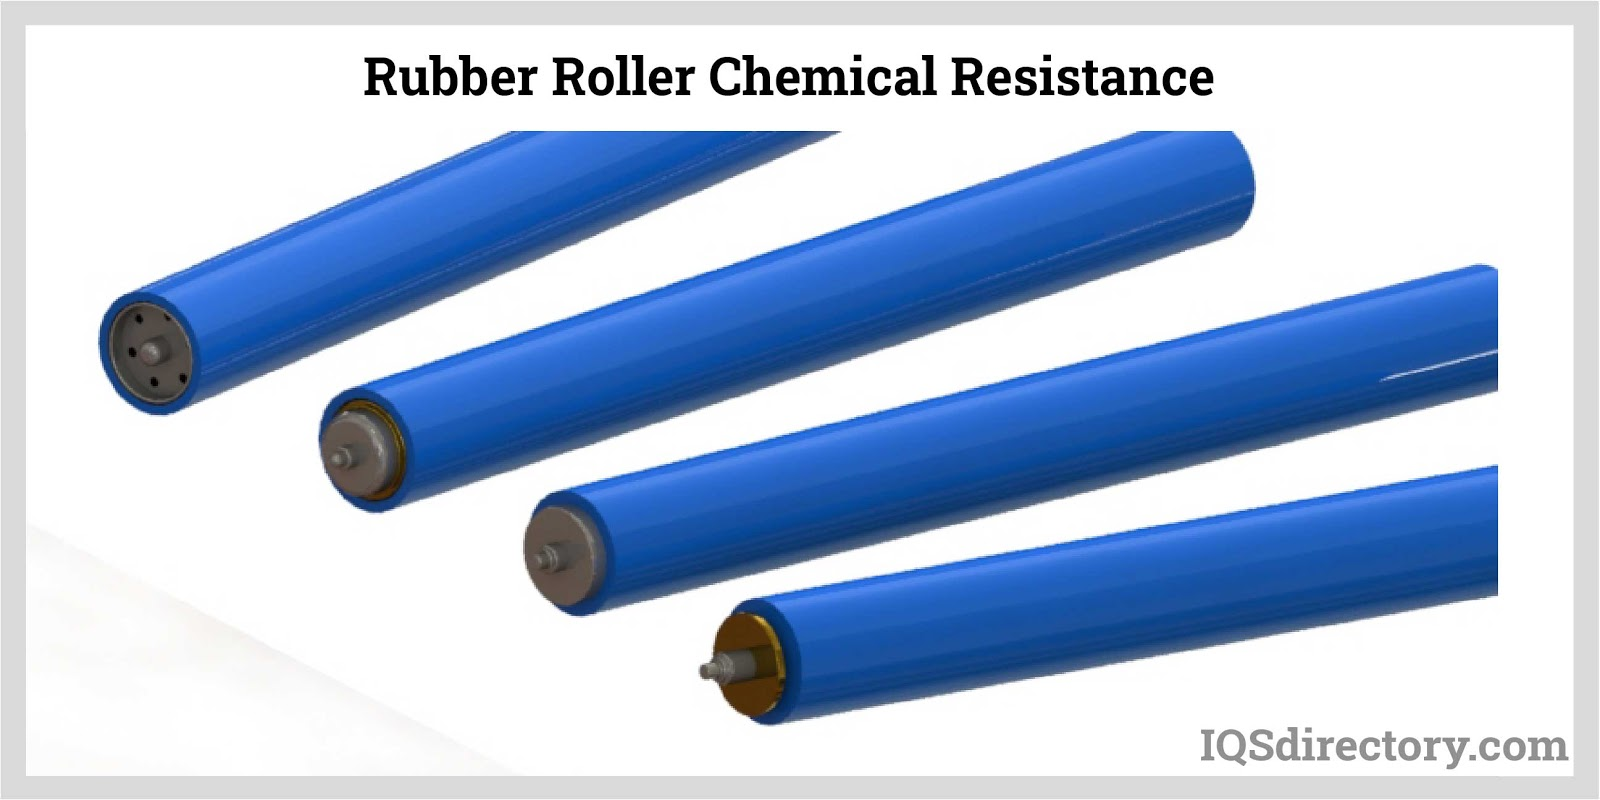 Rubber Roller Chemical Resistance